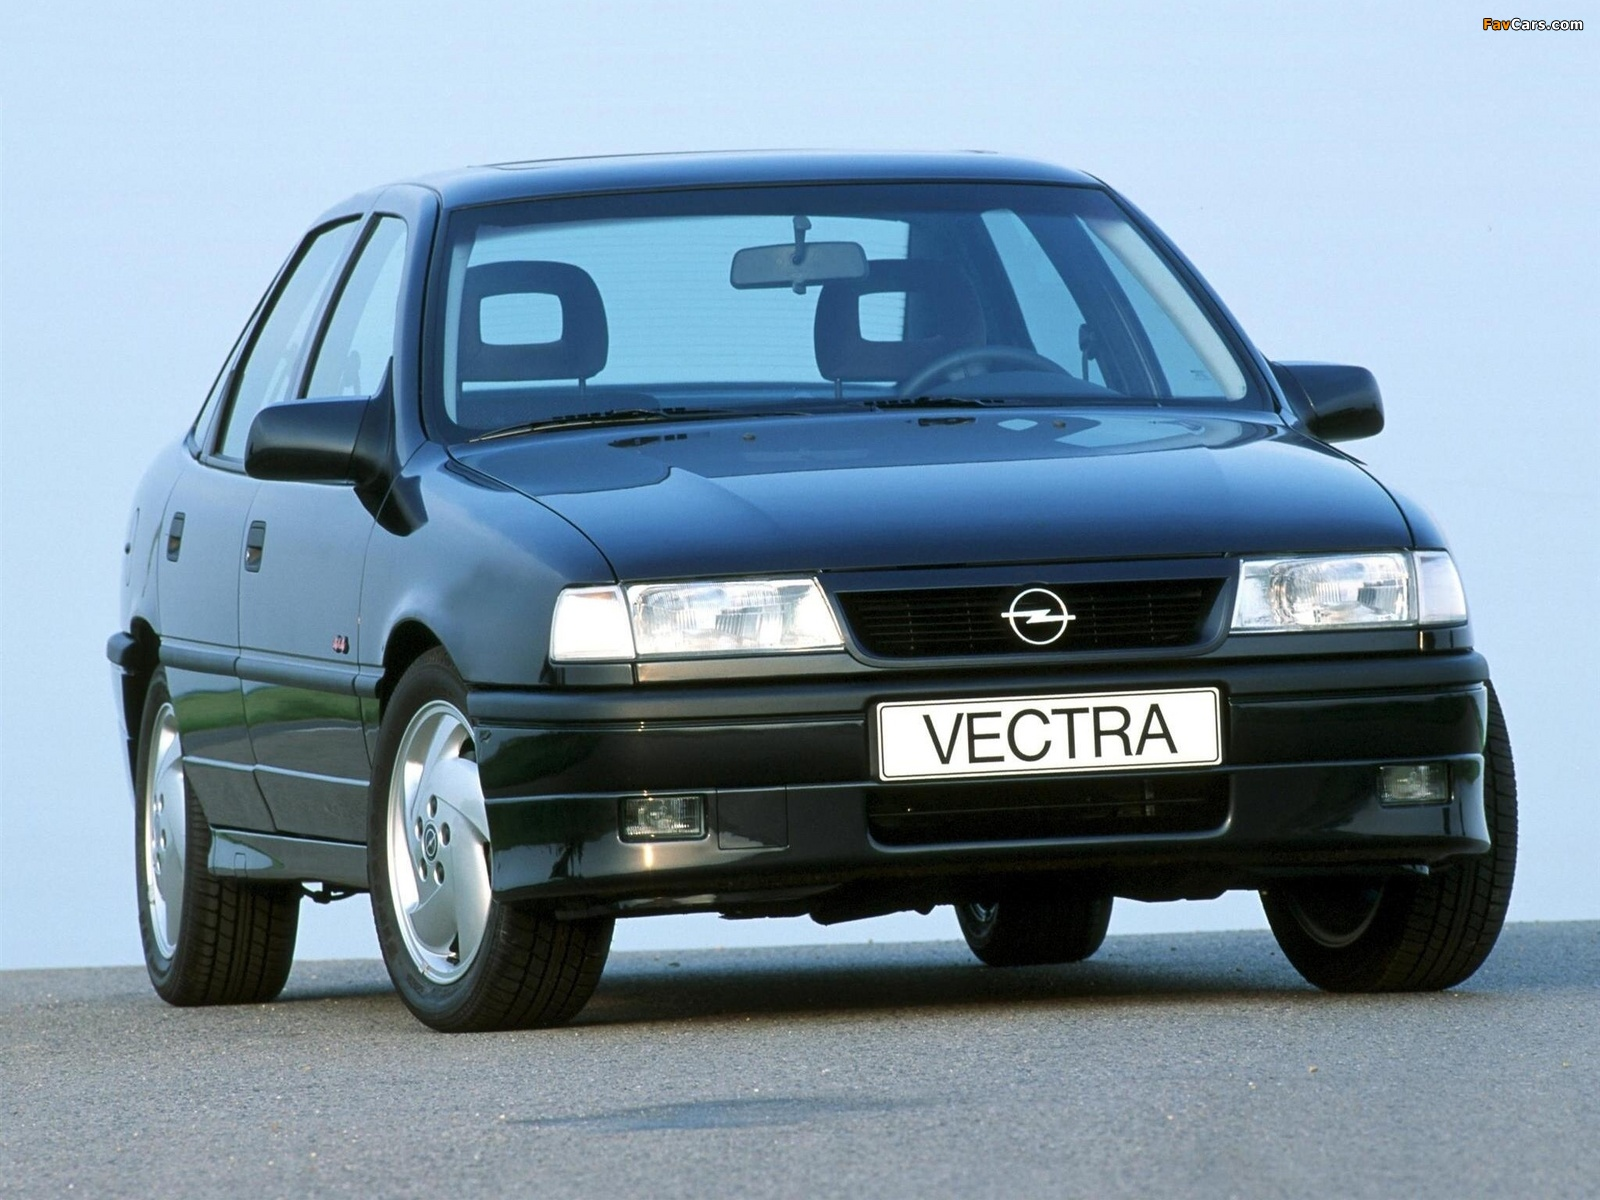 opel vectra turbo 4x4 a 1992 94 photos 1600x1200. Black Bedroom Furniture Sets. Home Design Ideas